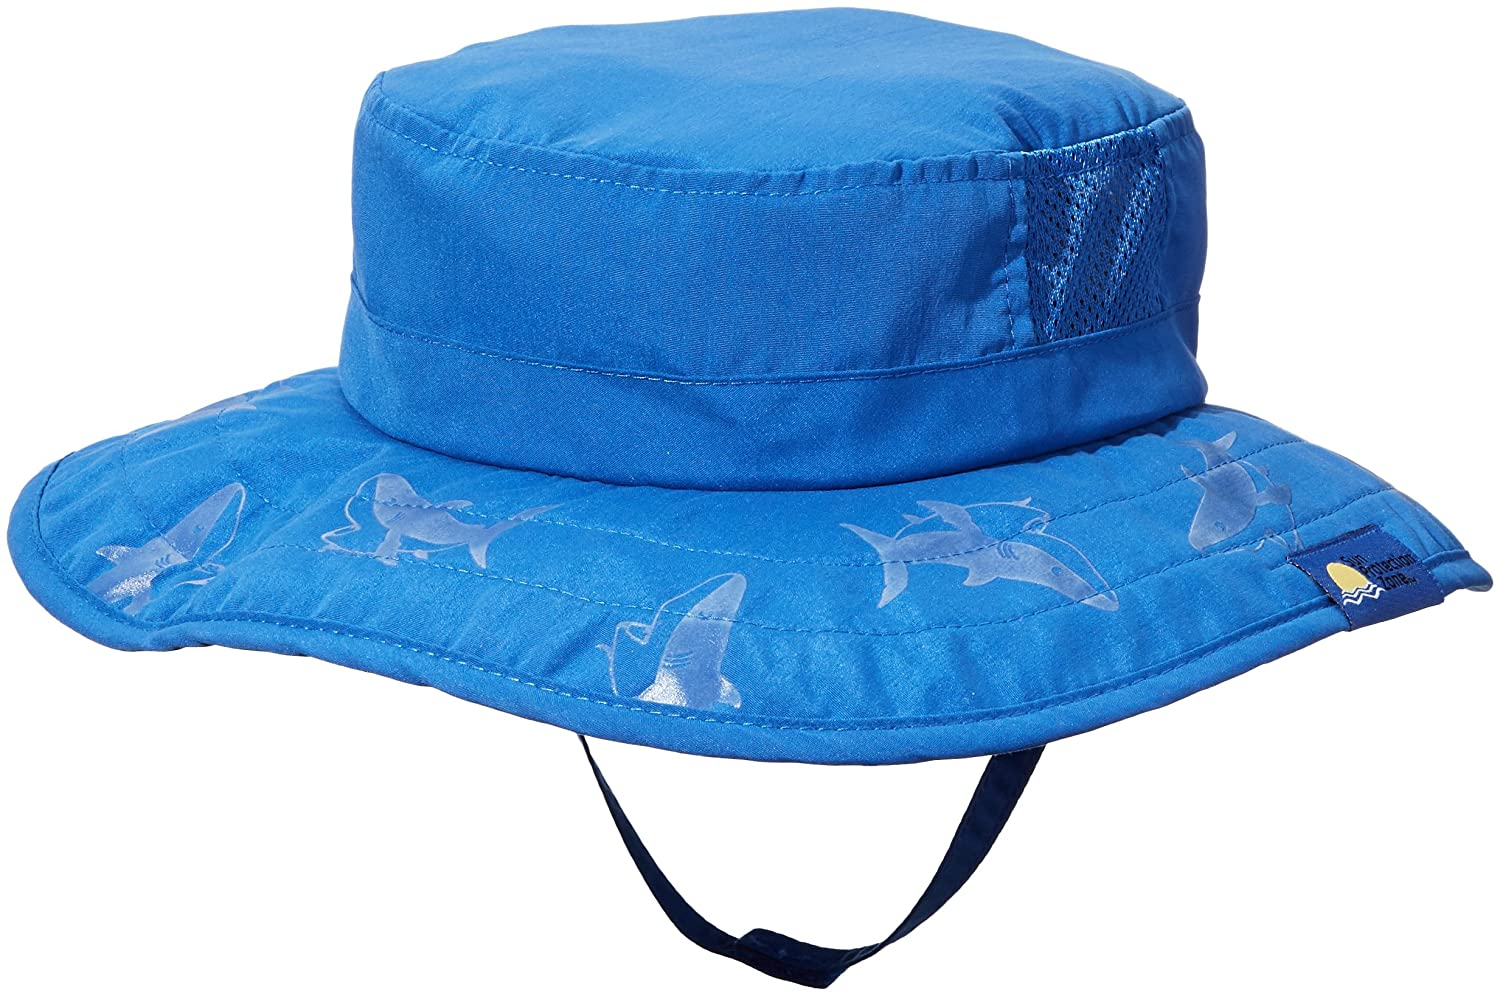 2pk Kids Safari Hat Sun Protective Zone UPF 50+ Child Block UV Rays Shade 938151 Blue Boys Fits most children ages 3-10 Sun Protection Zone